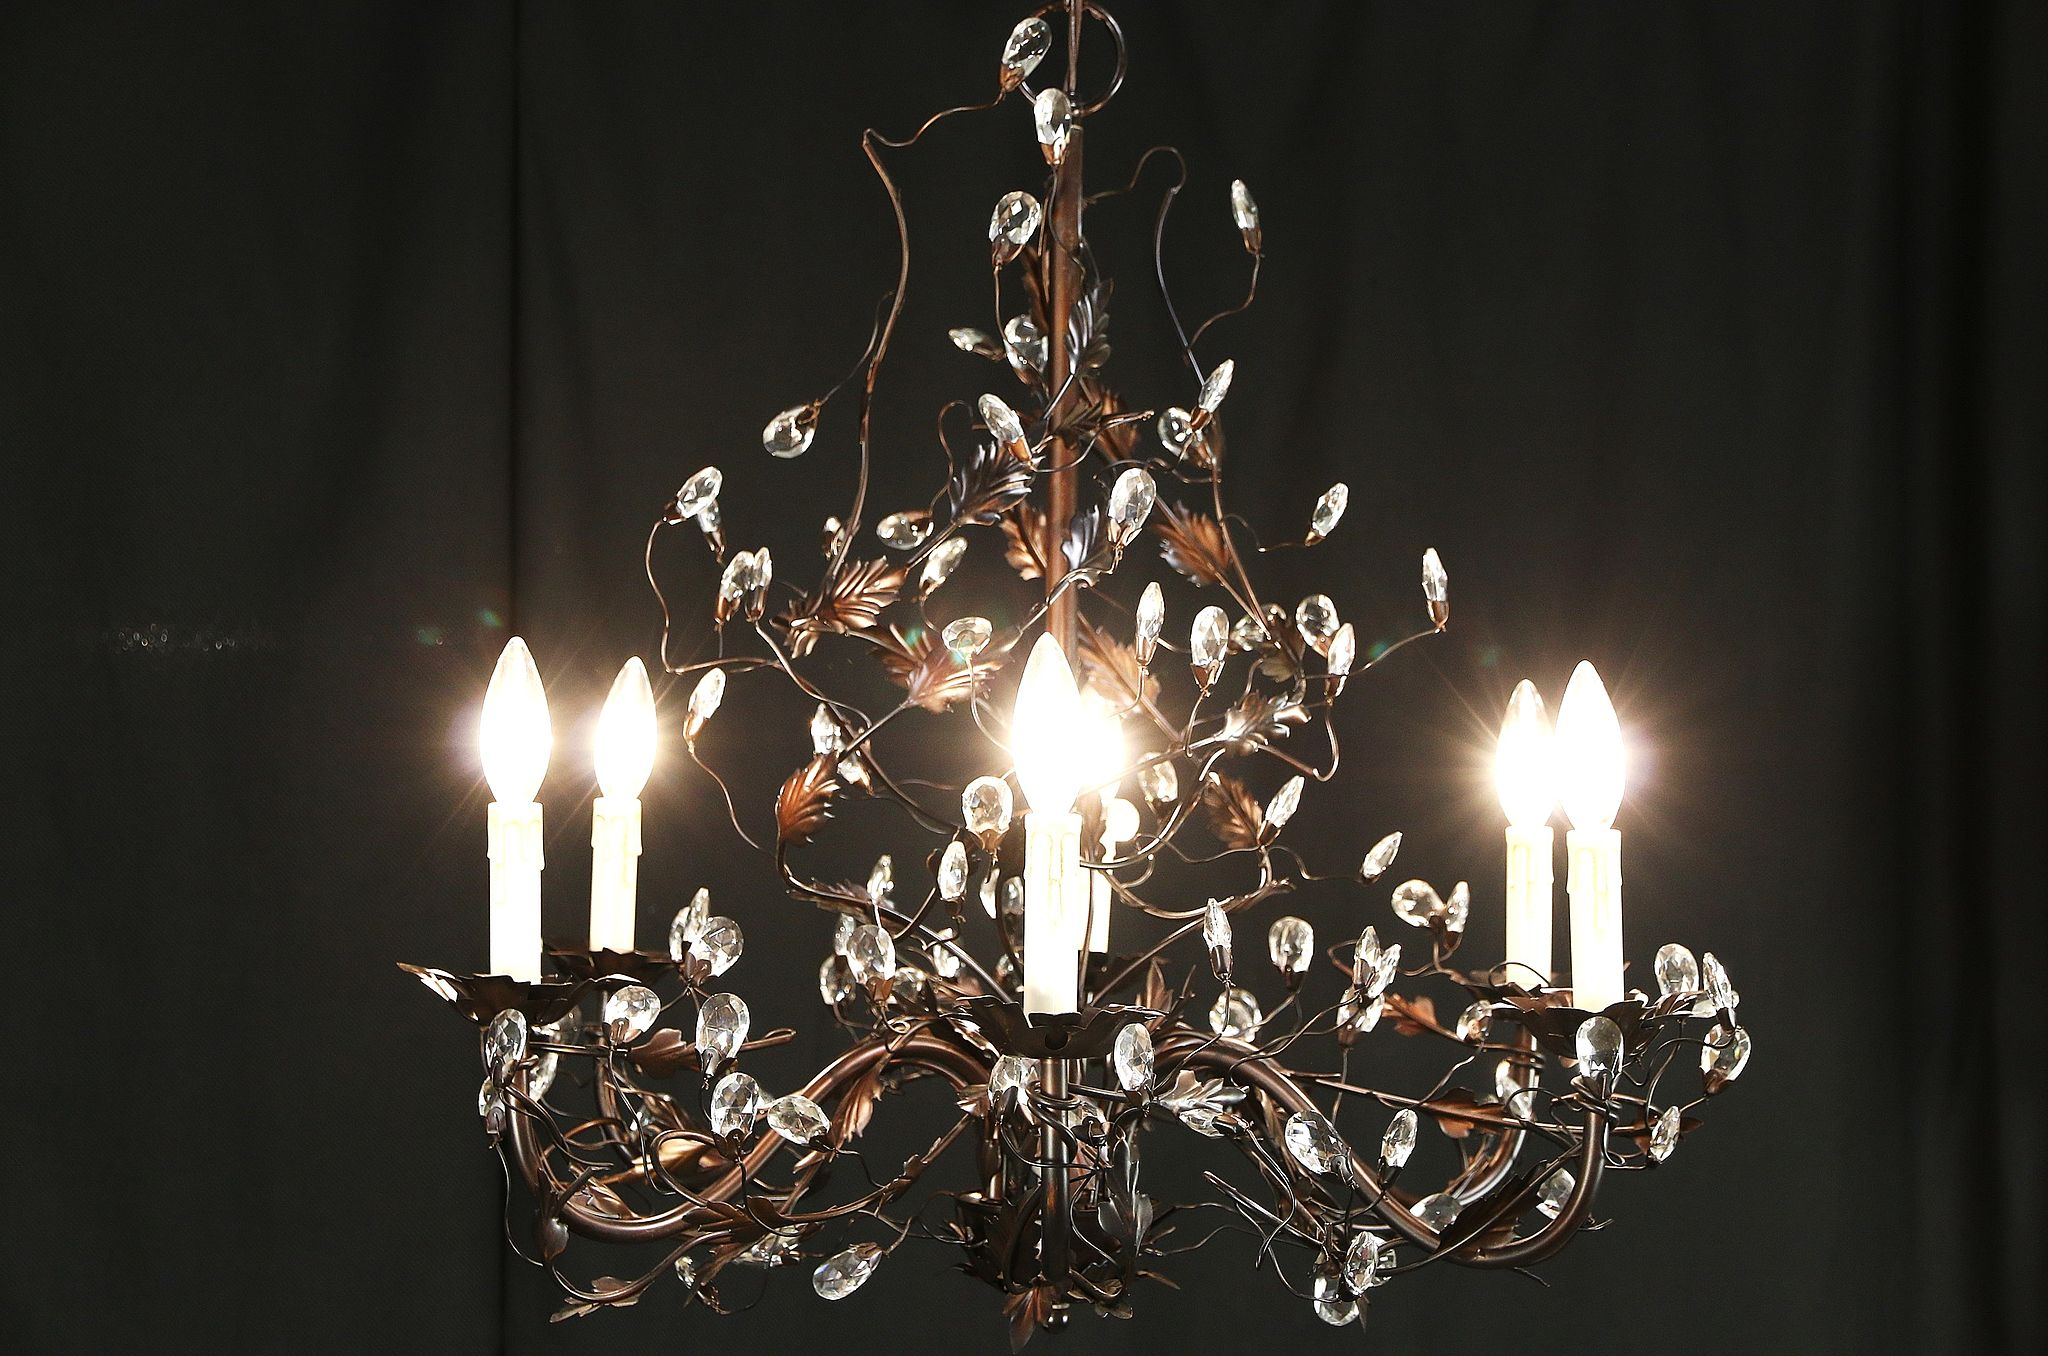 Sold wrought iron vine crystal chandelier 6 candles harp wrought iron vine crystal chandelier 6 candles mozeypictures Choice Image